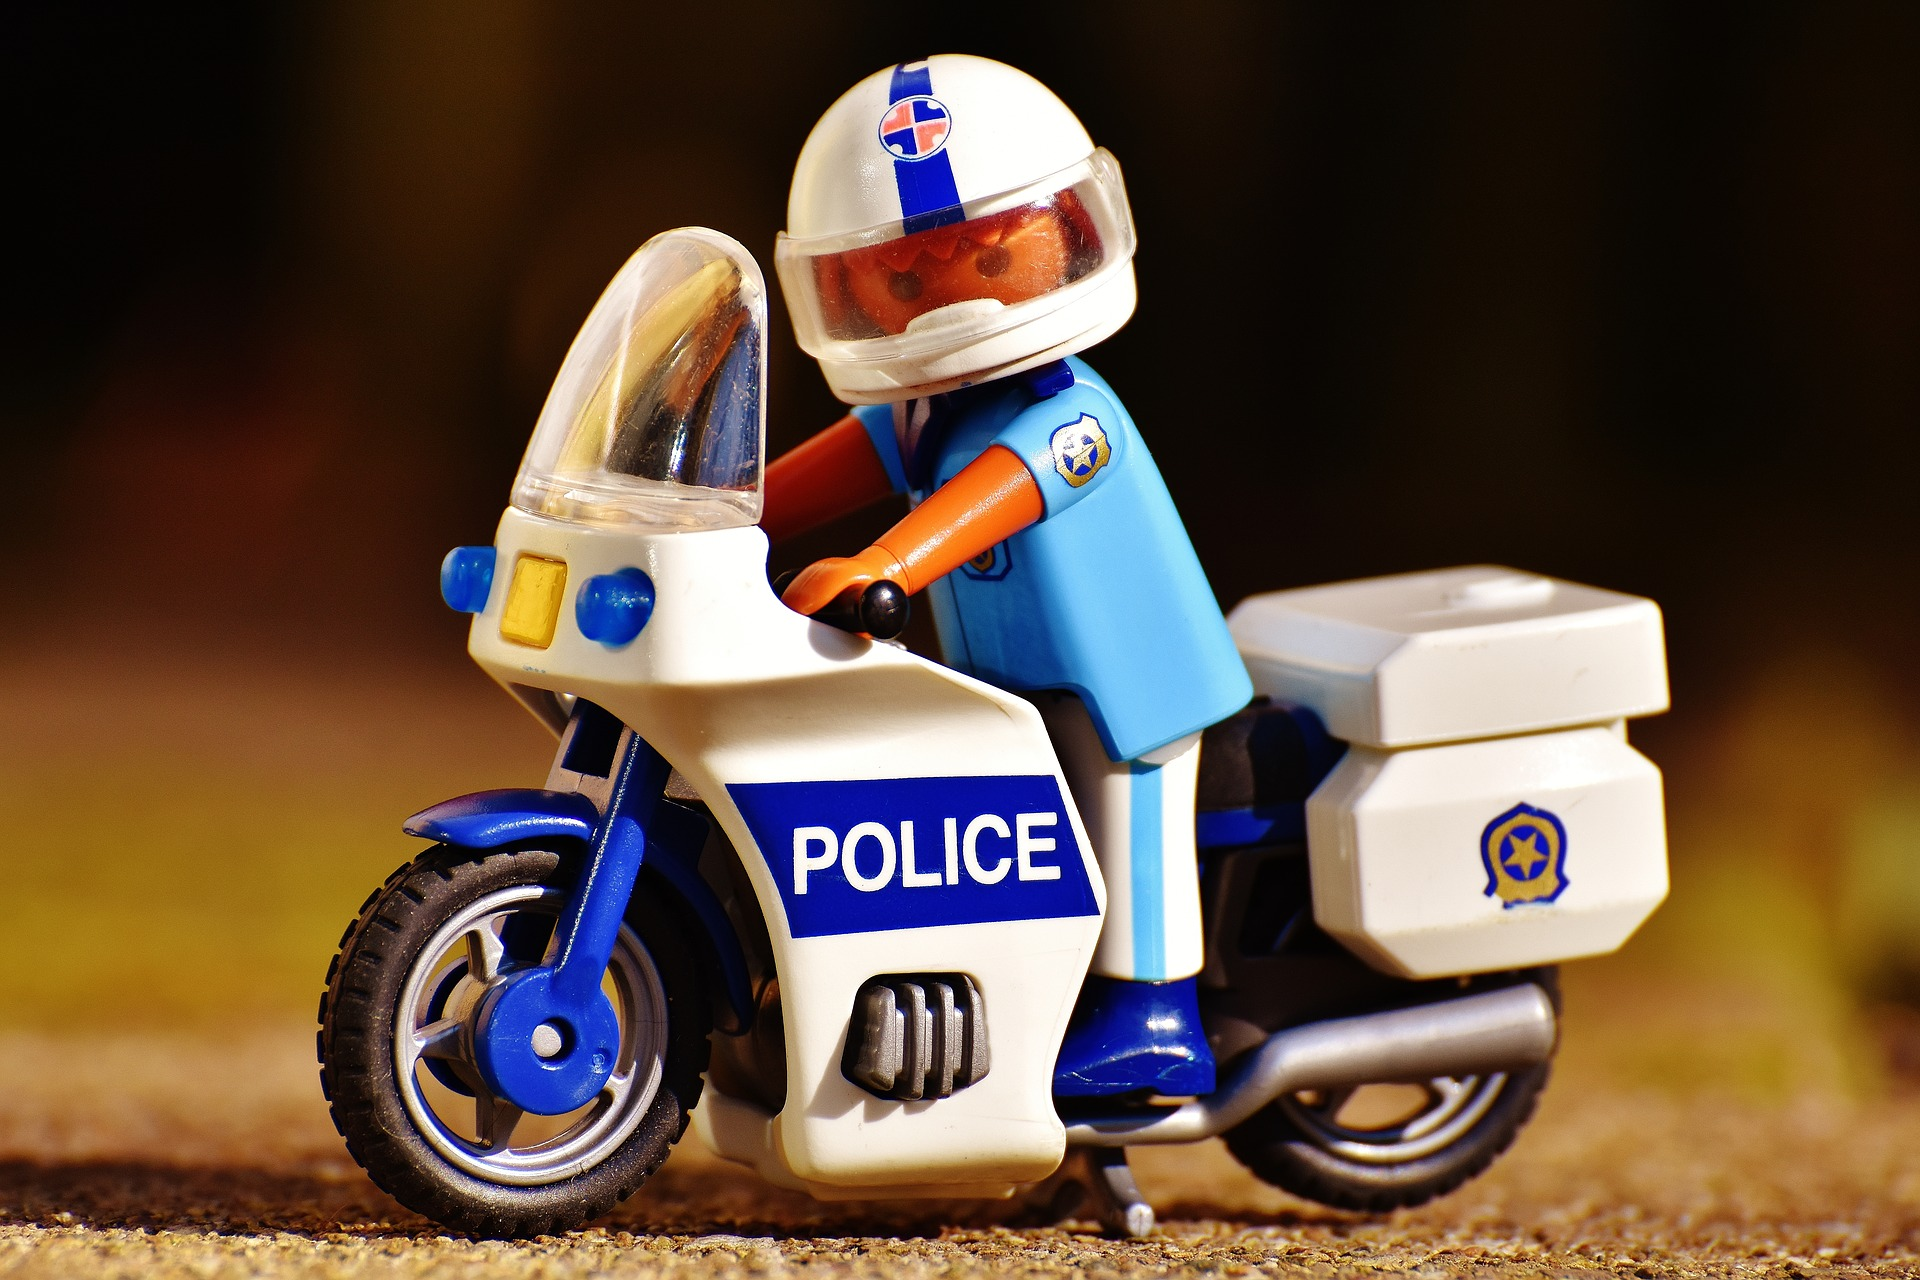 police on motorcycle